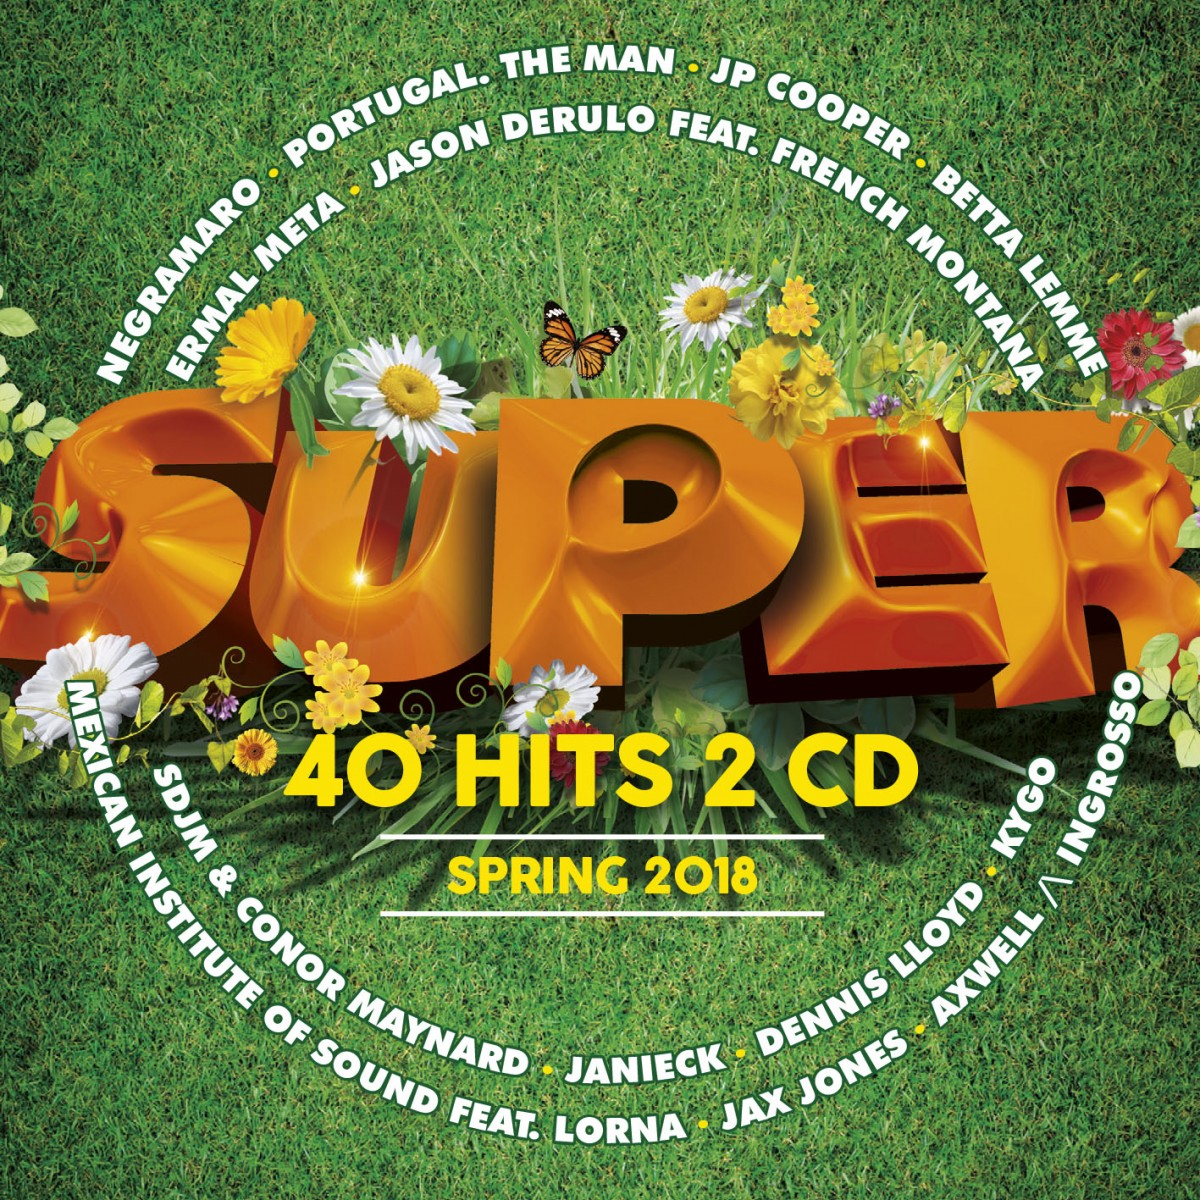 SUPERHITS SPRING 2018